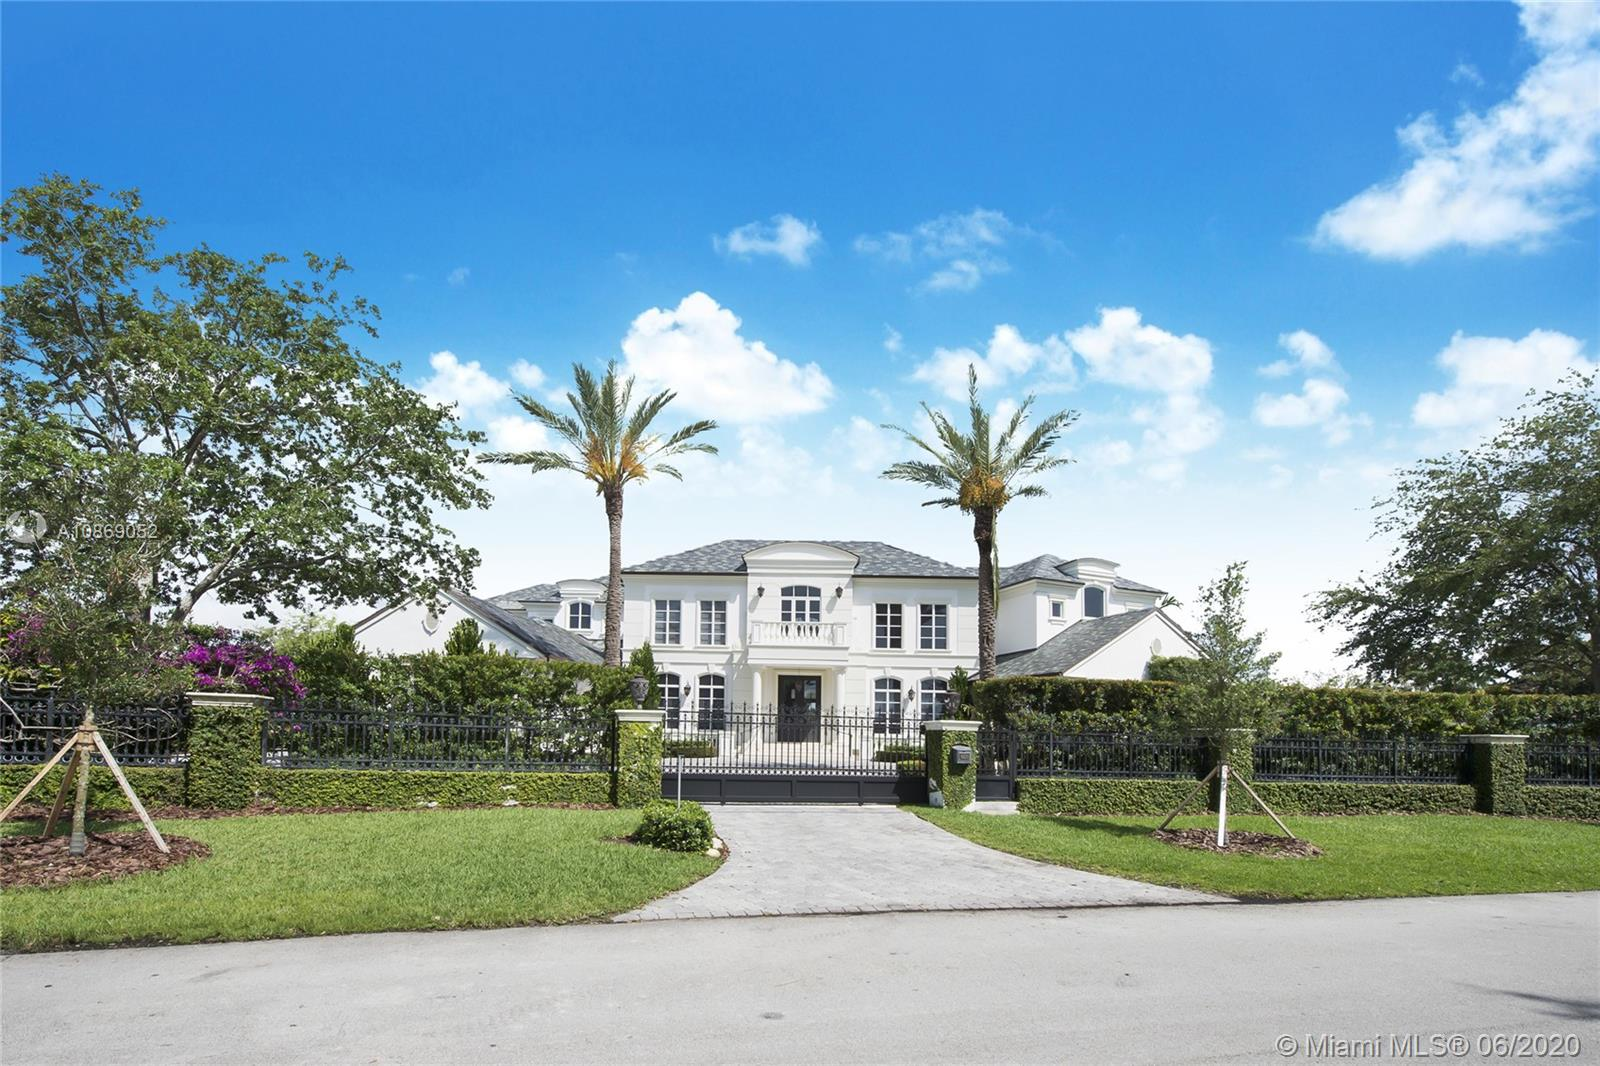 Glamorous estate, remodeled in 2015, offers every modern luxury. Over 170' of waterfront; 100 foot dock; wrap-around lagoon views; no bridges to bay. Designed by famed architect Ramon Pacheco in highly desirable gated Old Cutler Bay. Abundant covered terraces and courtyard with water views. Spectacular soaring entry. Magnificent sweeping stair. Formal dining gallery. Custom finishes & fixtures. Full-home generator and surge protection system. In-home theater; 3 guest suites; staff quarters; 4-car garage. Infinity-edge pool.